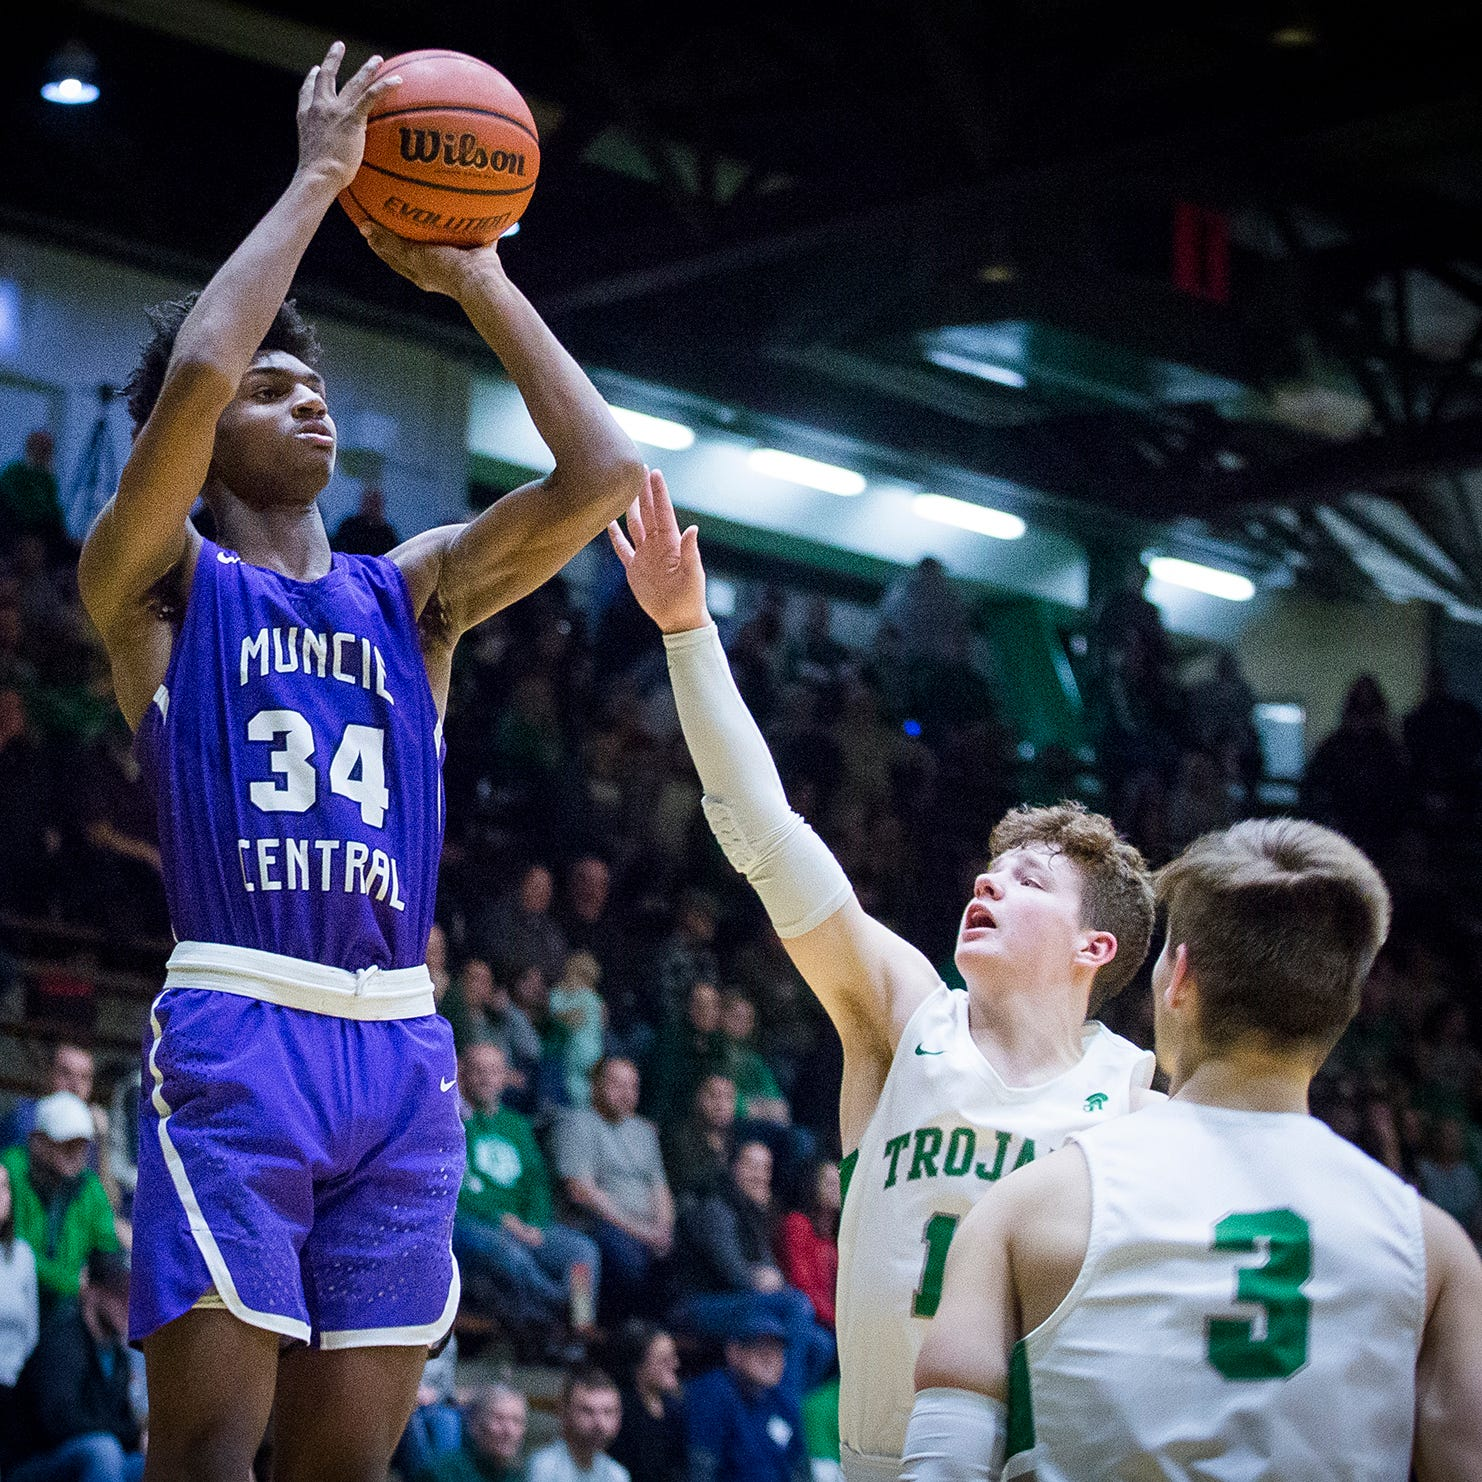 Muncie Central basketball star earns national recognition from MaxPreps